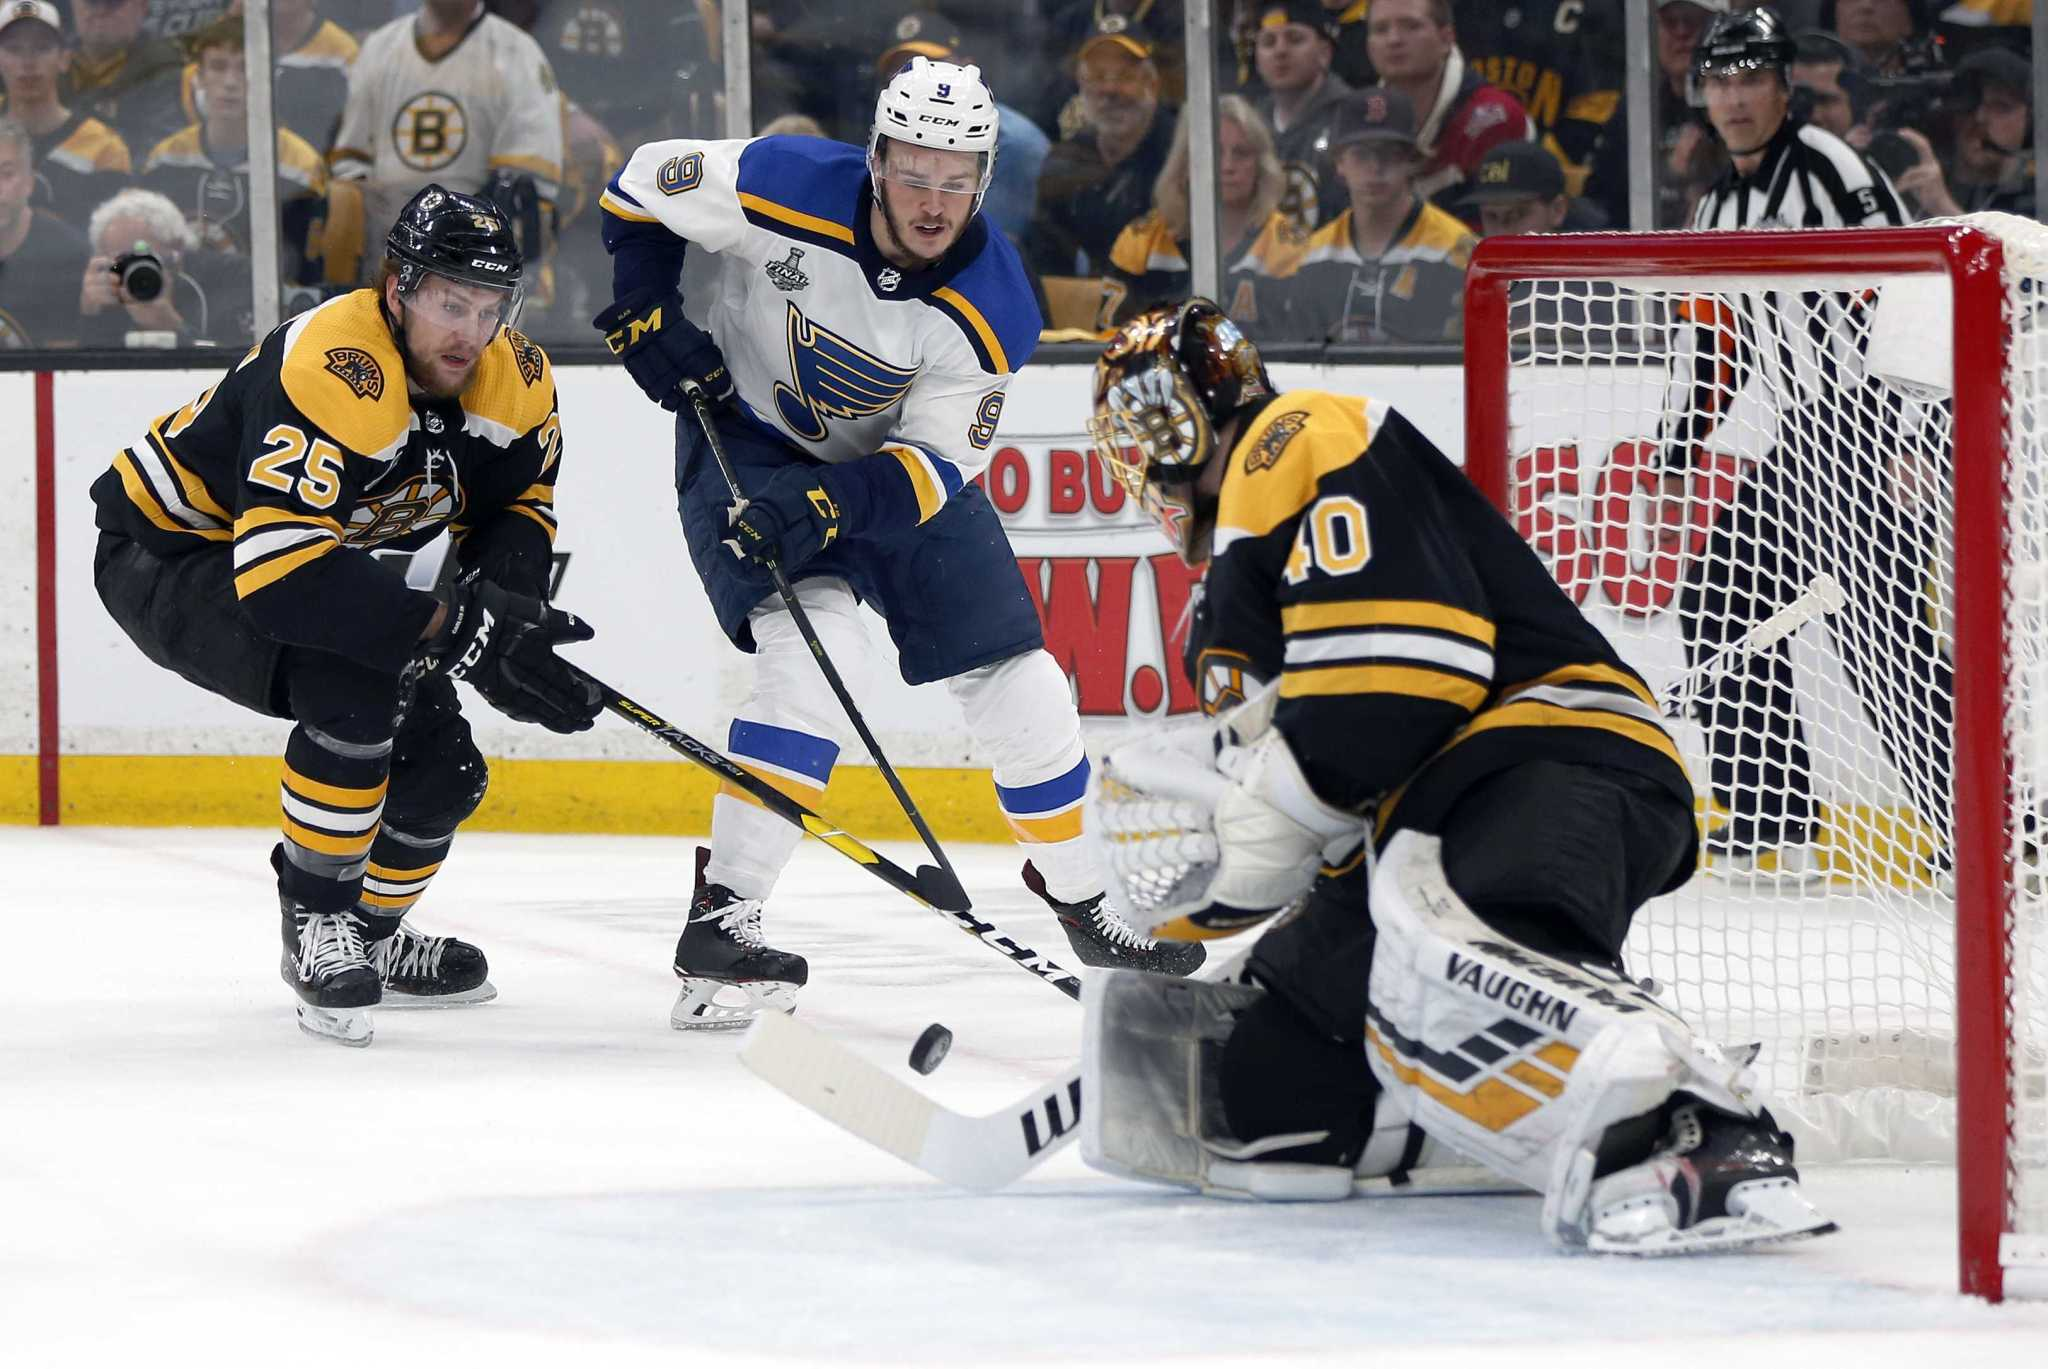 St Louis Blues Defeat Boston Bruins Winning Their First Stanley Cup Connecticut Post